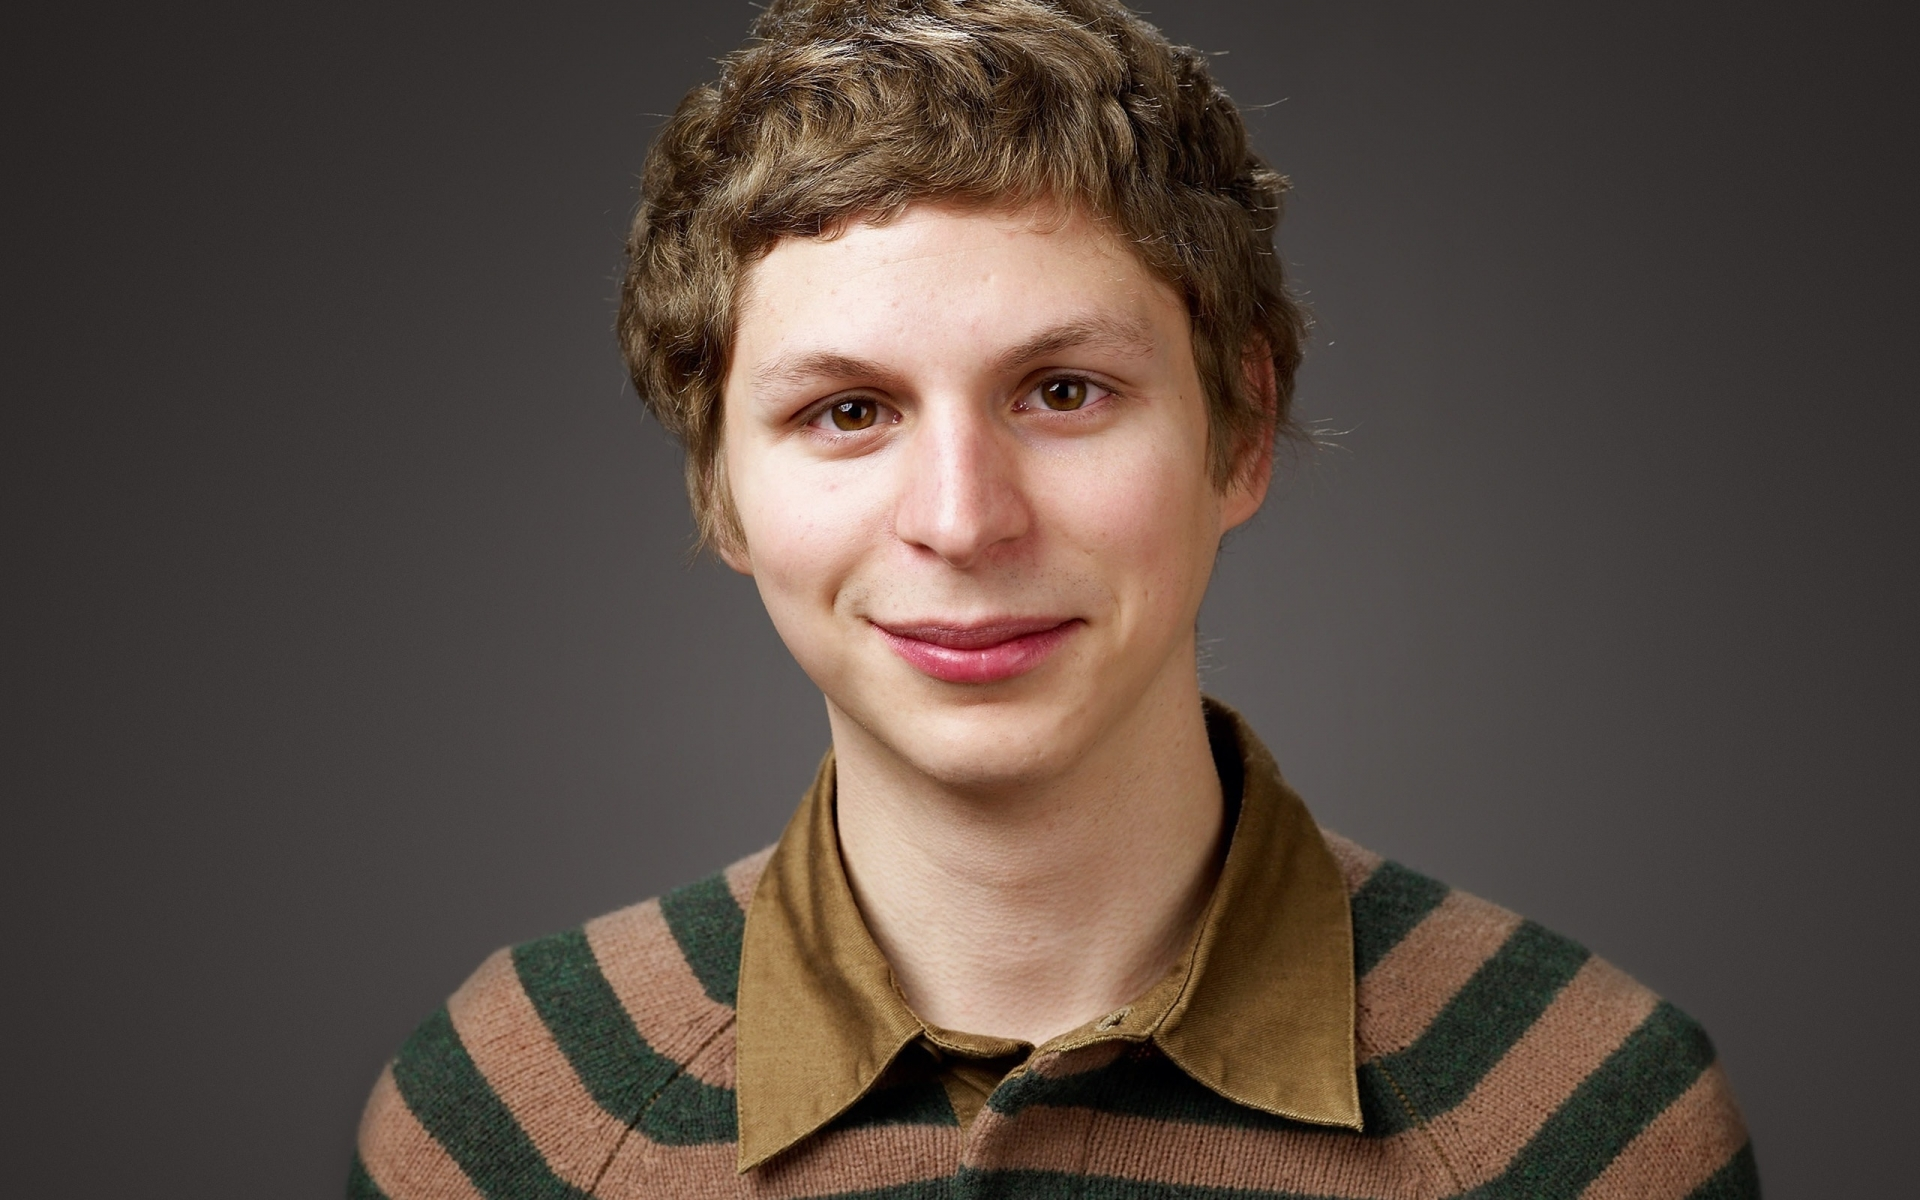 Michael Cera for 1920 x 1200 widescreen resolution